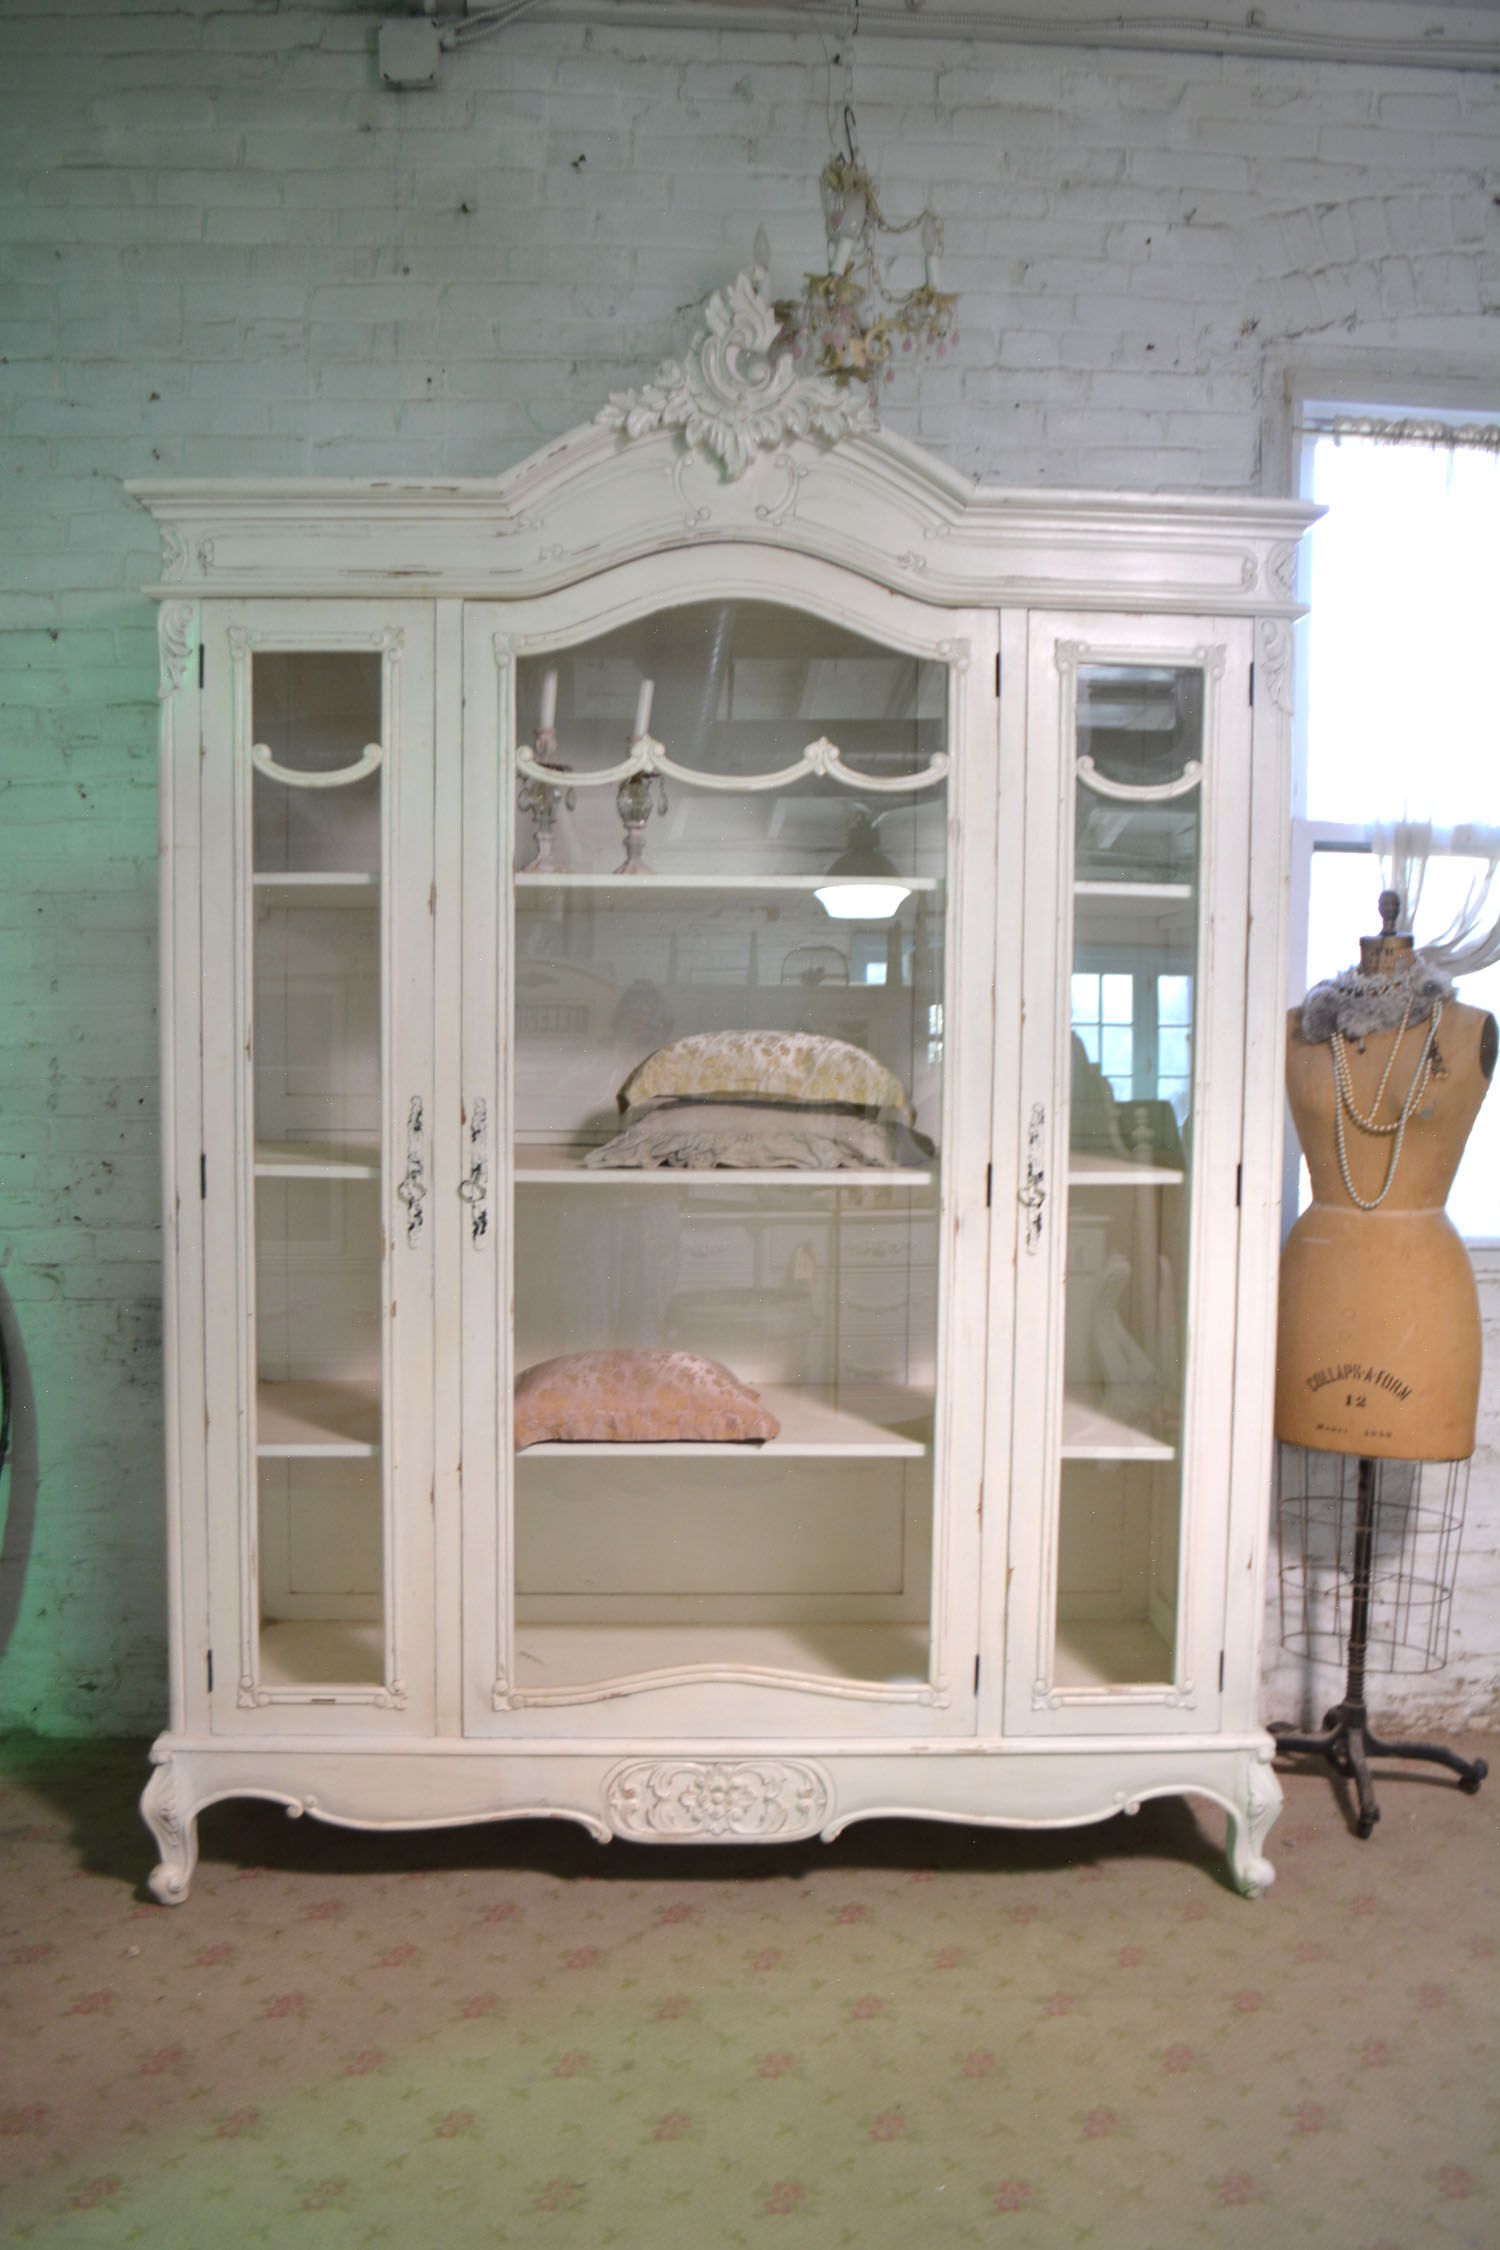 Painted Cottage Chic Shabby French Farmhouse China Linen Cabinet Cc1068 1 995 00 The Painted Cottag Shabby Chic Room Chic Home Decor Shabby Chic Shelves